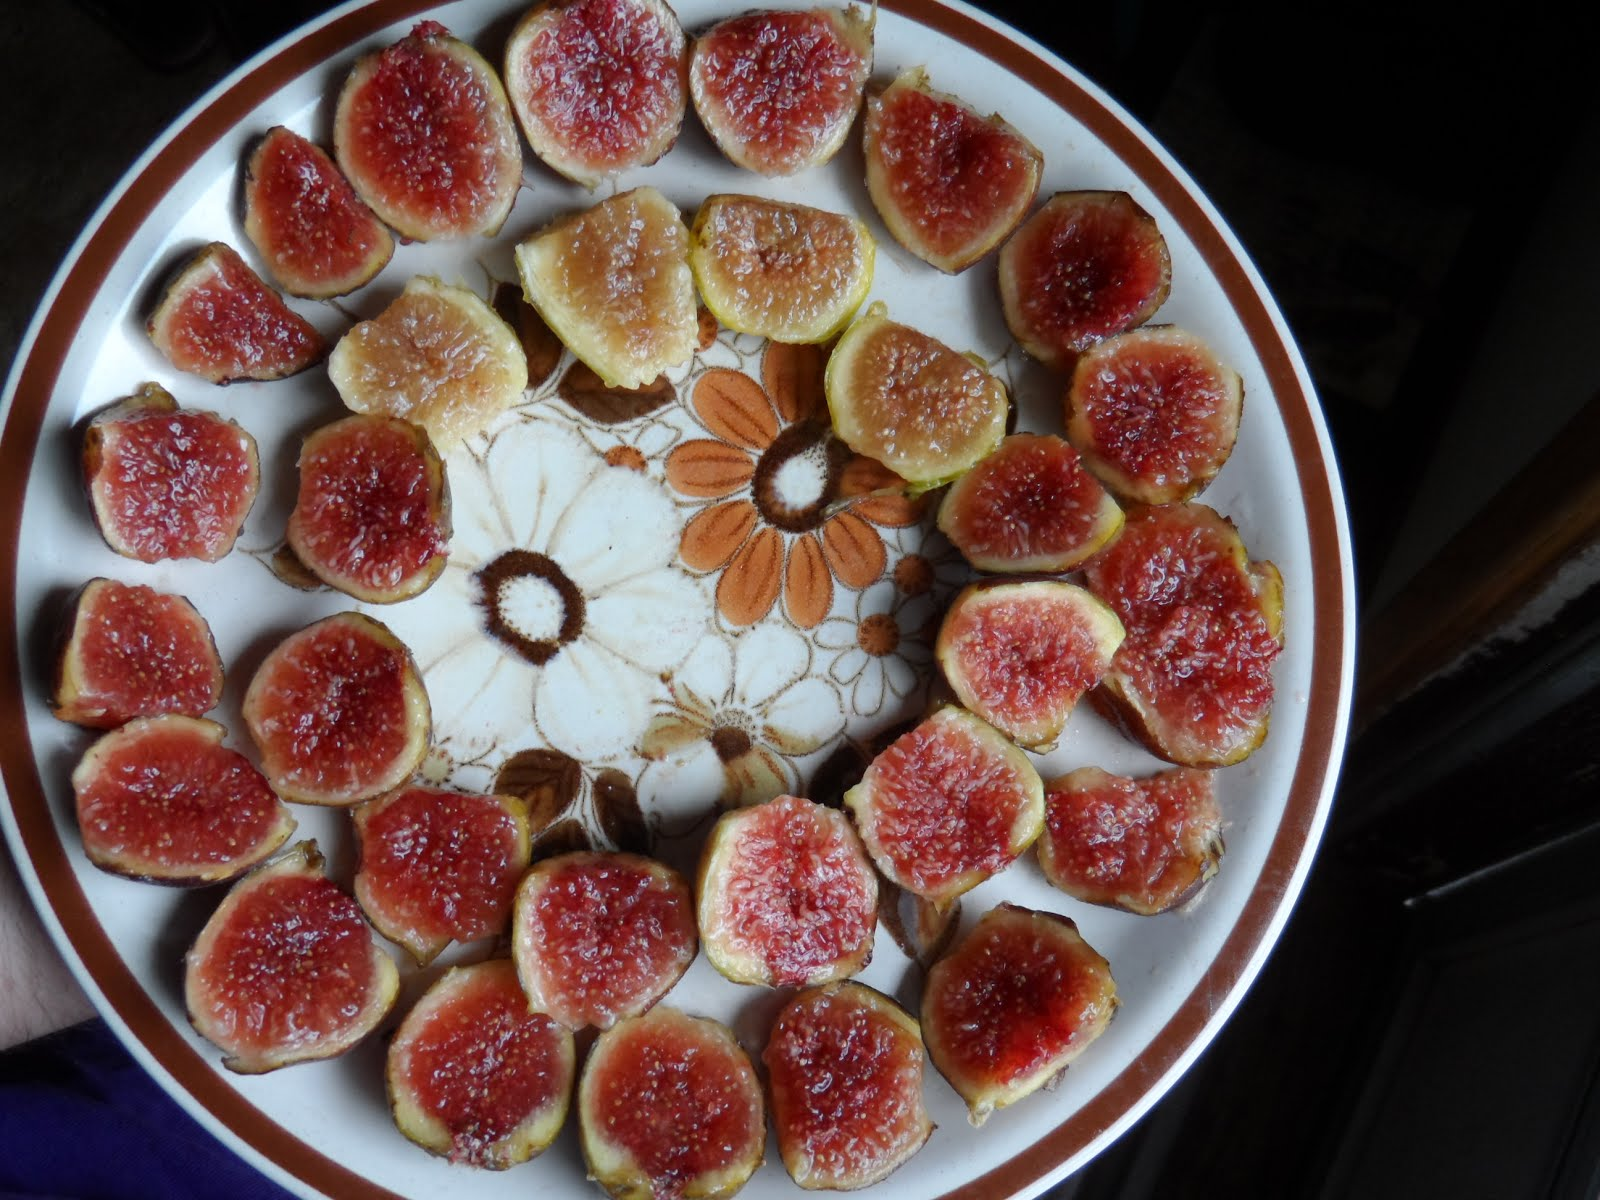 And savor your own fresh figs!